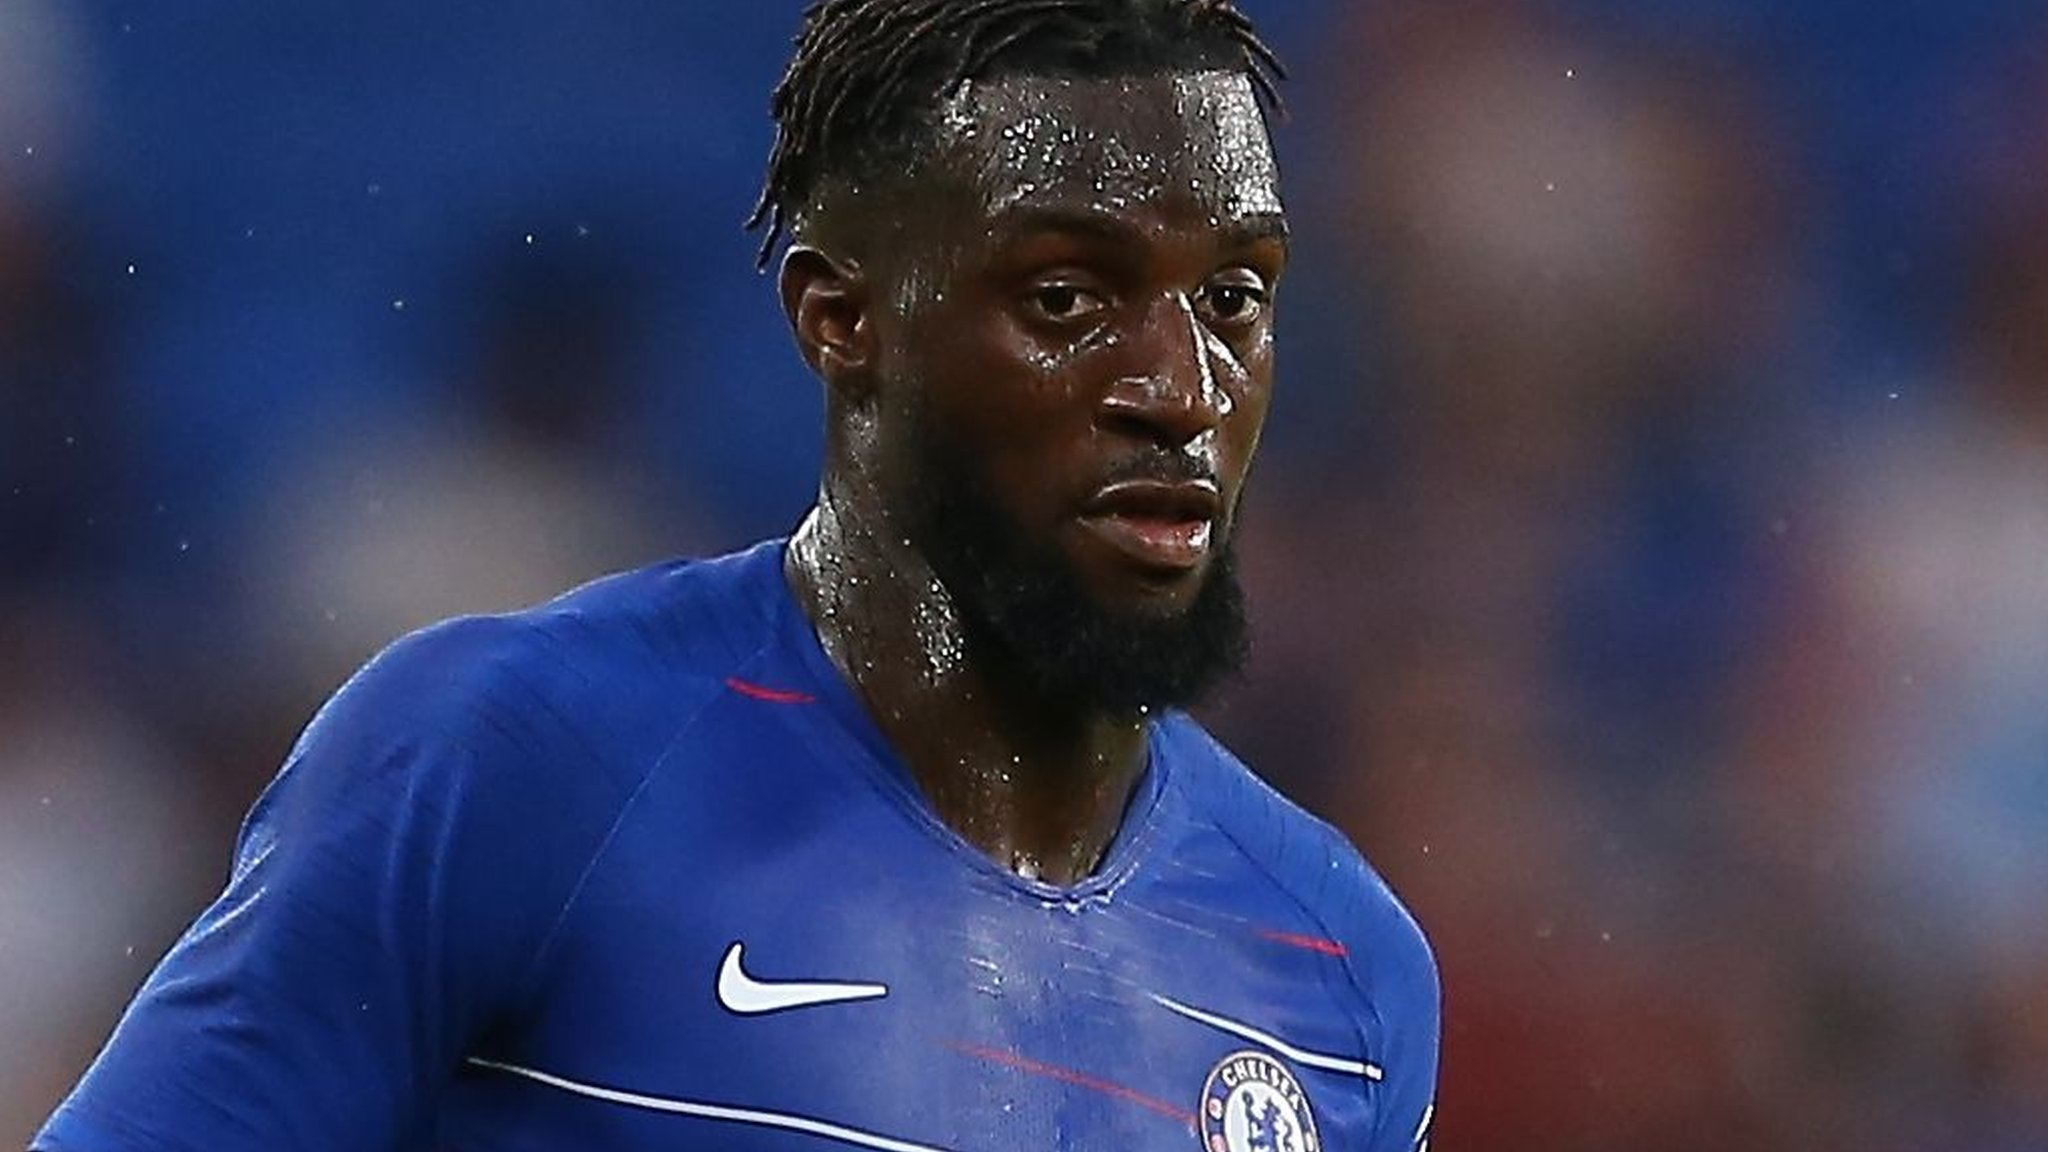 Chelsea midfielder Bakayoko joins Milan on loan